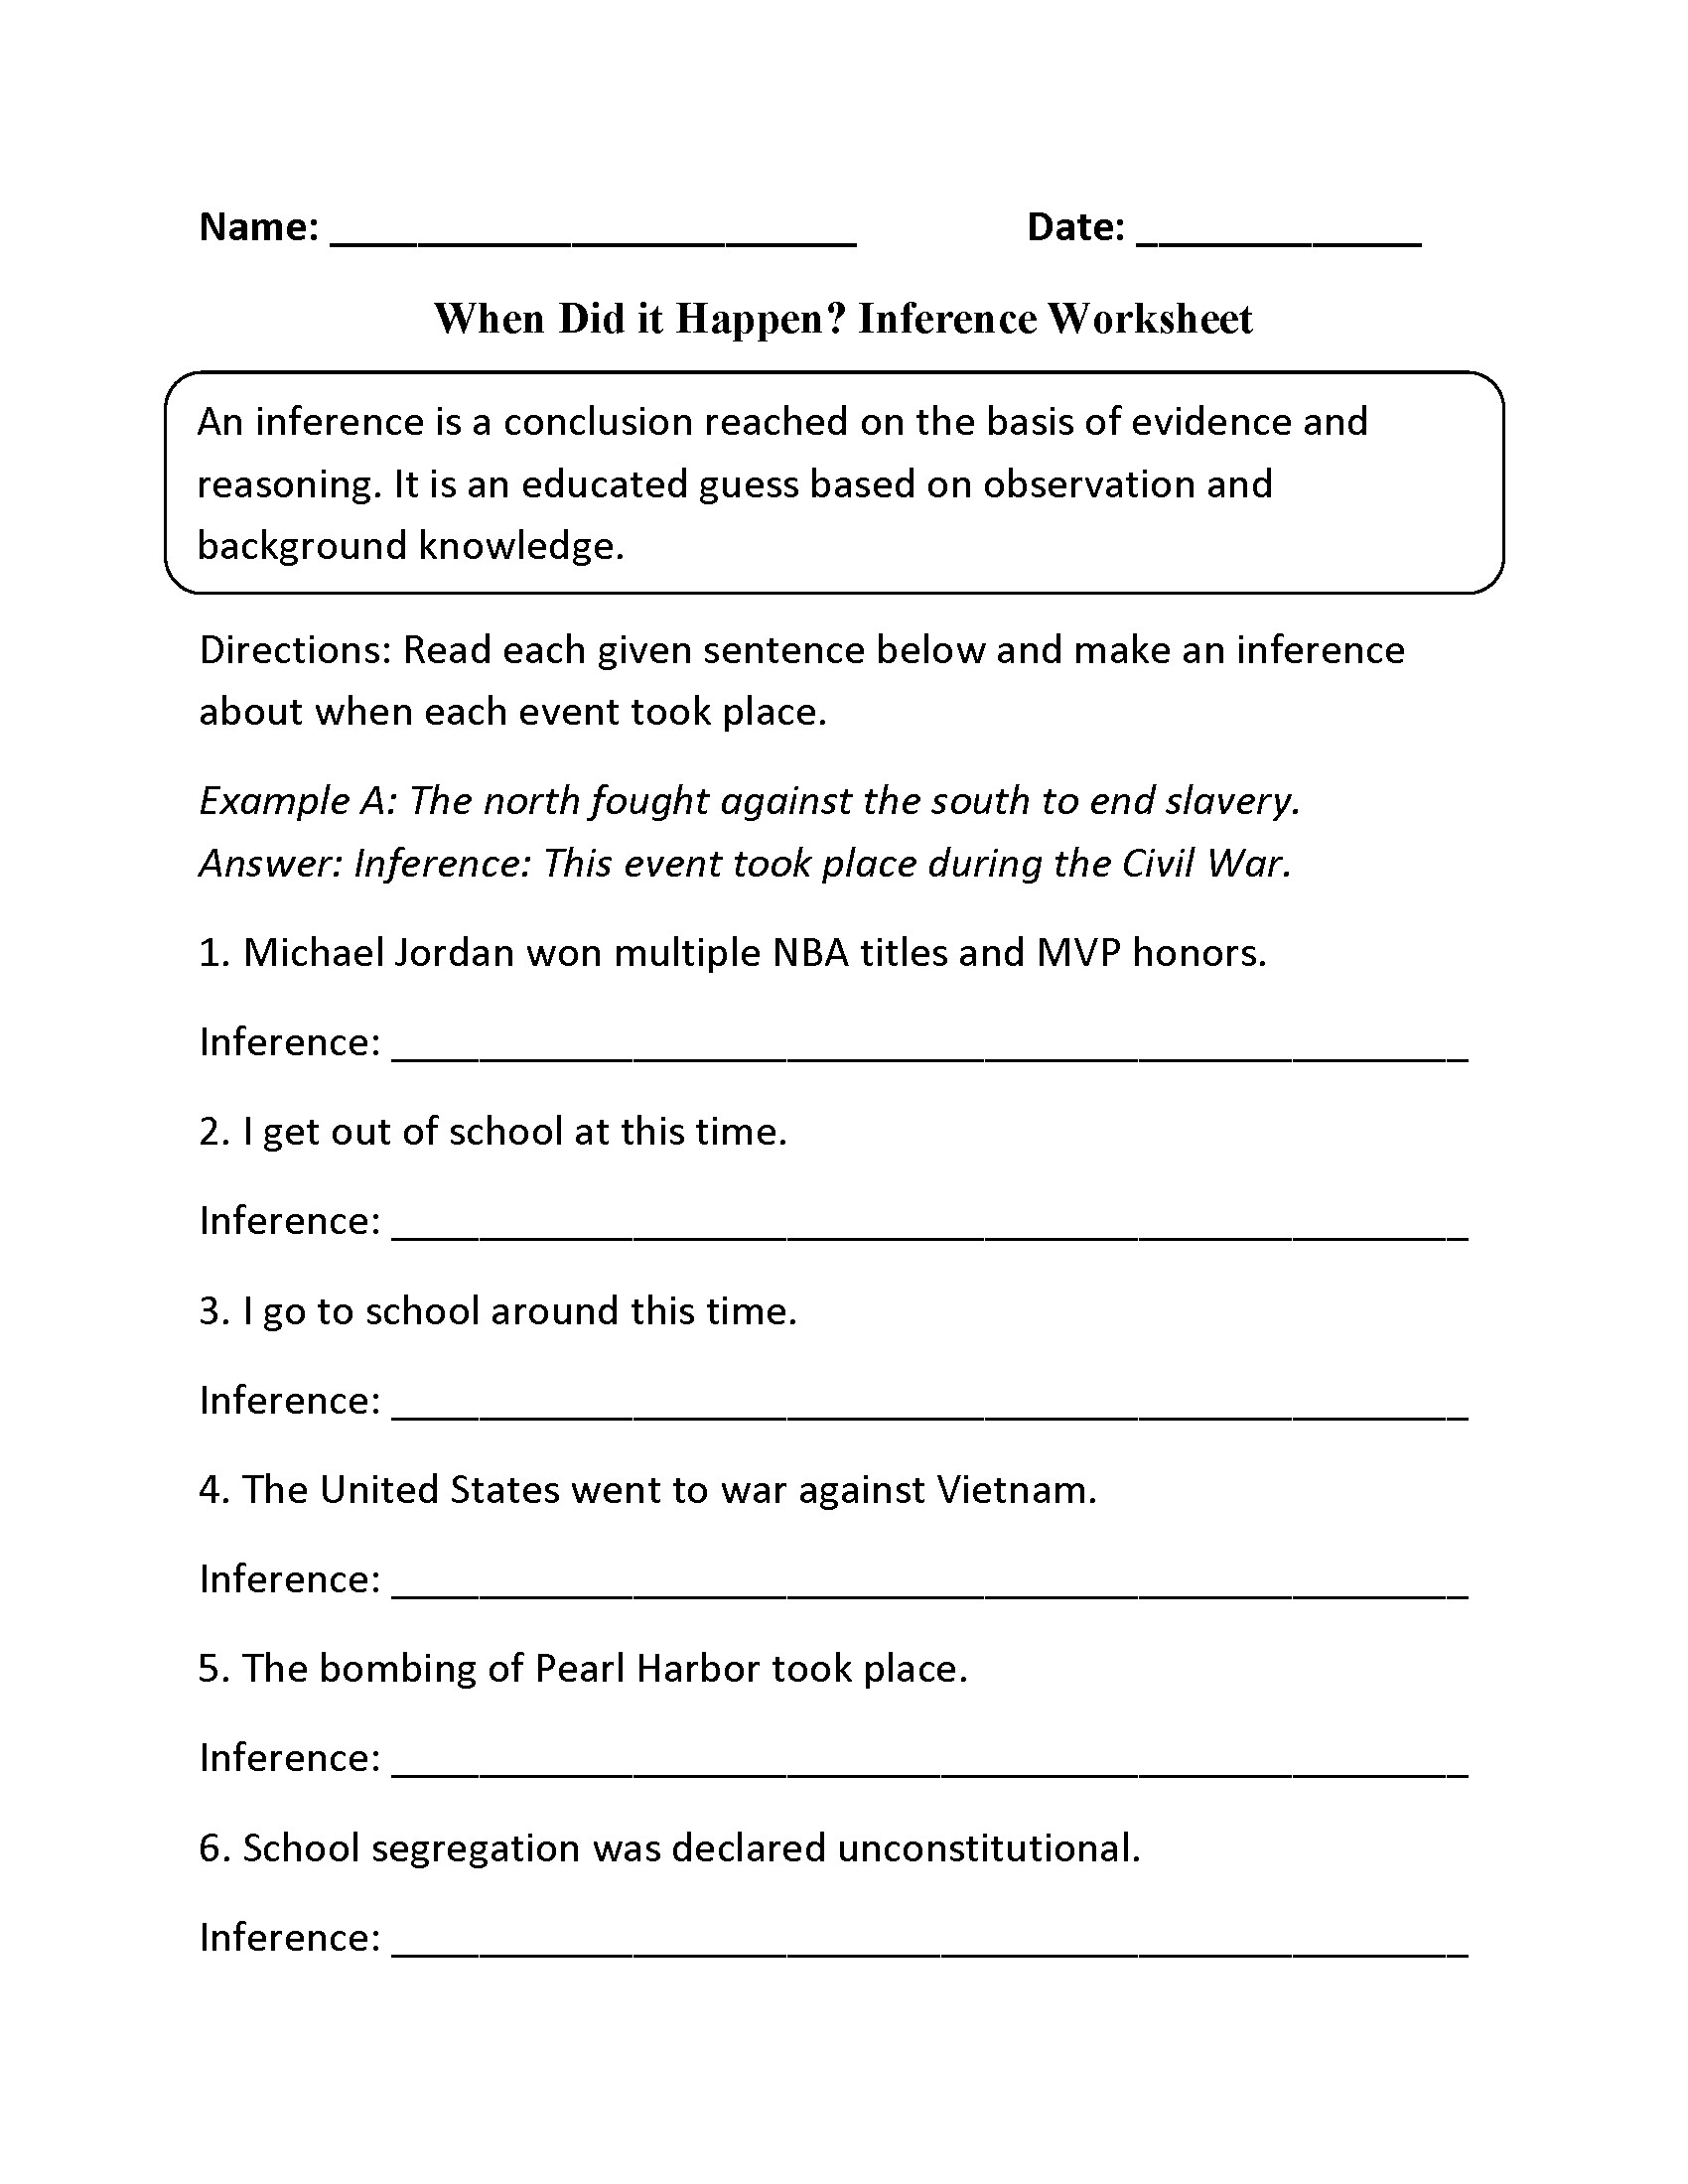 Inference Worksheets for 4th Grade Making Inferences Worksheets Grade 3